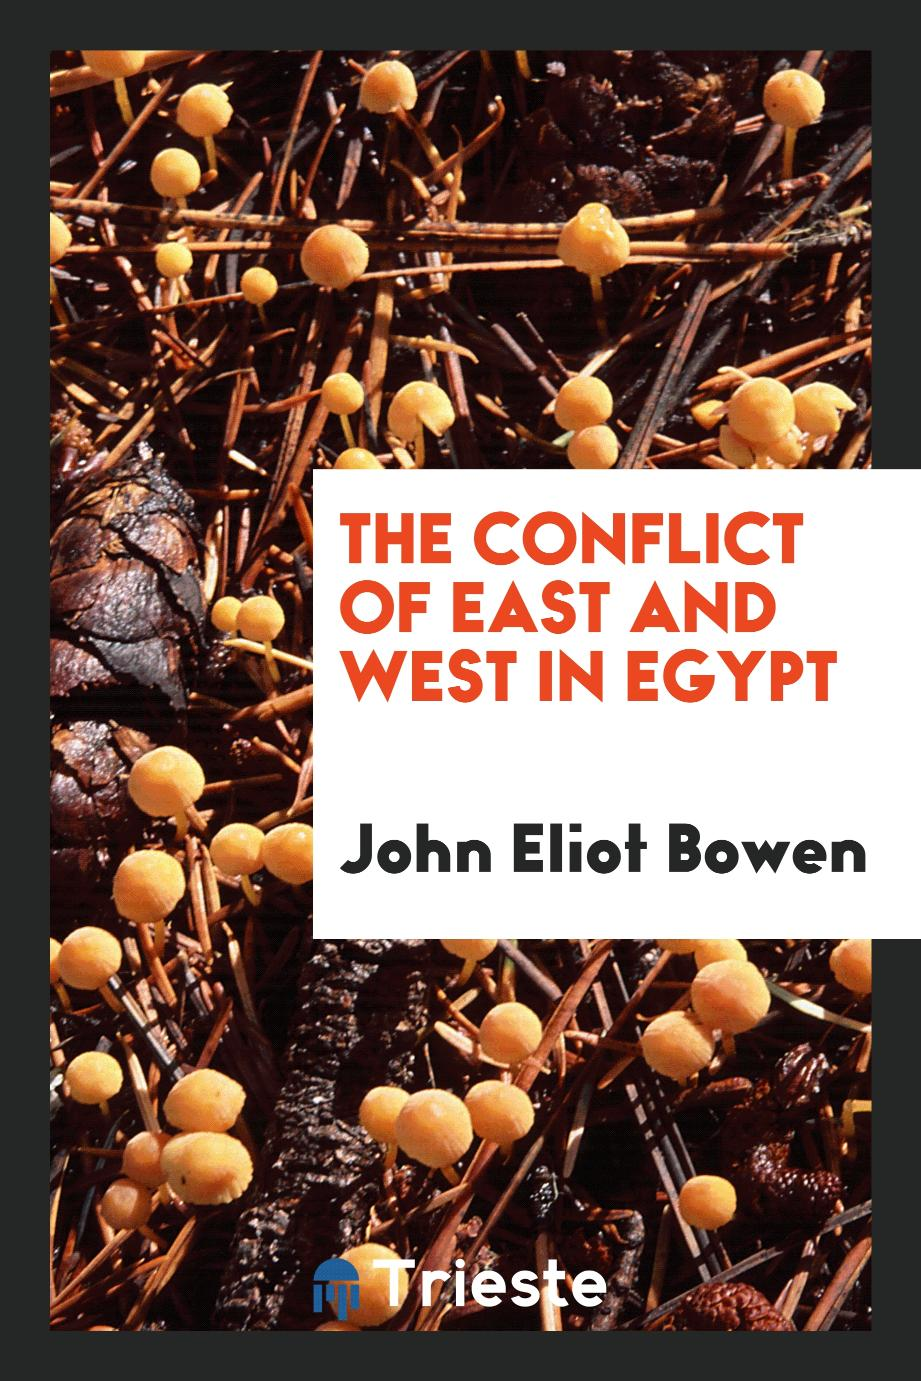 The conflict of East and West in Egypt